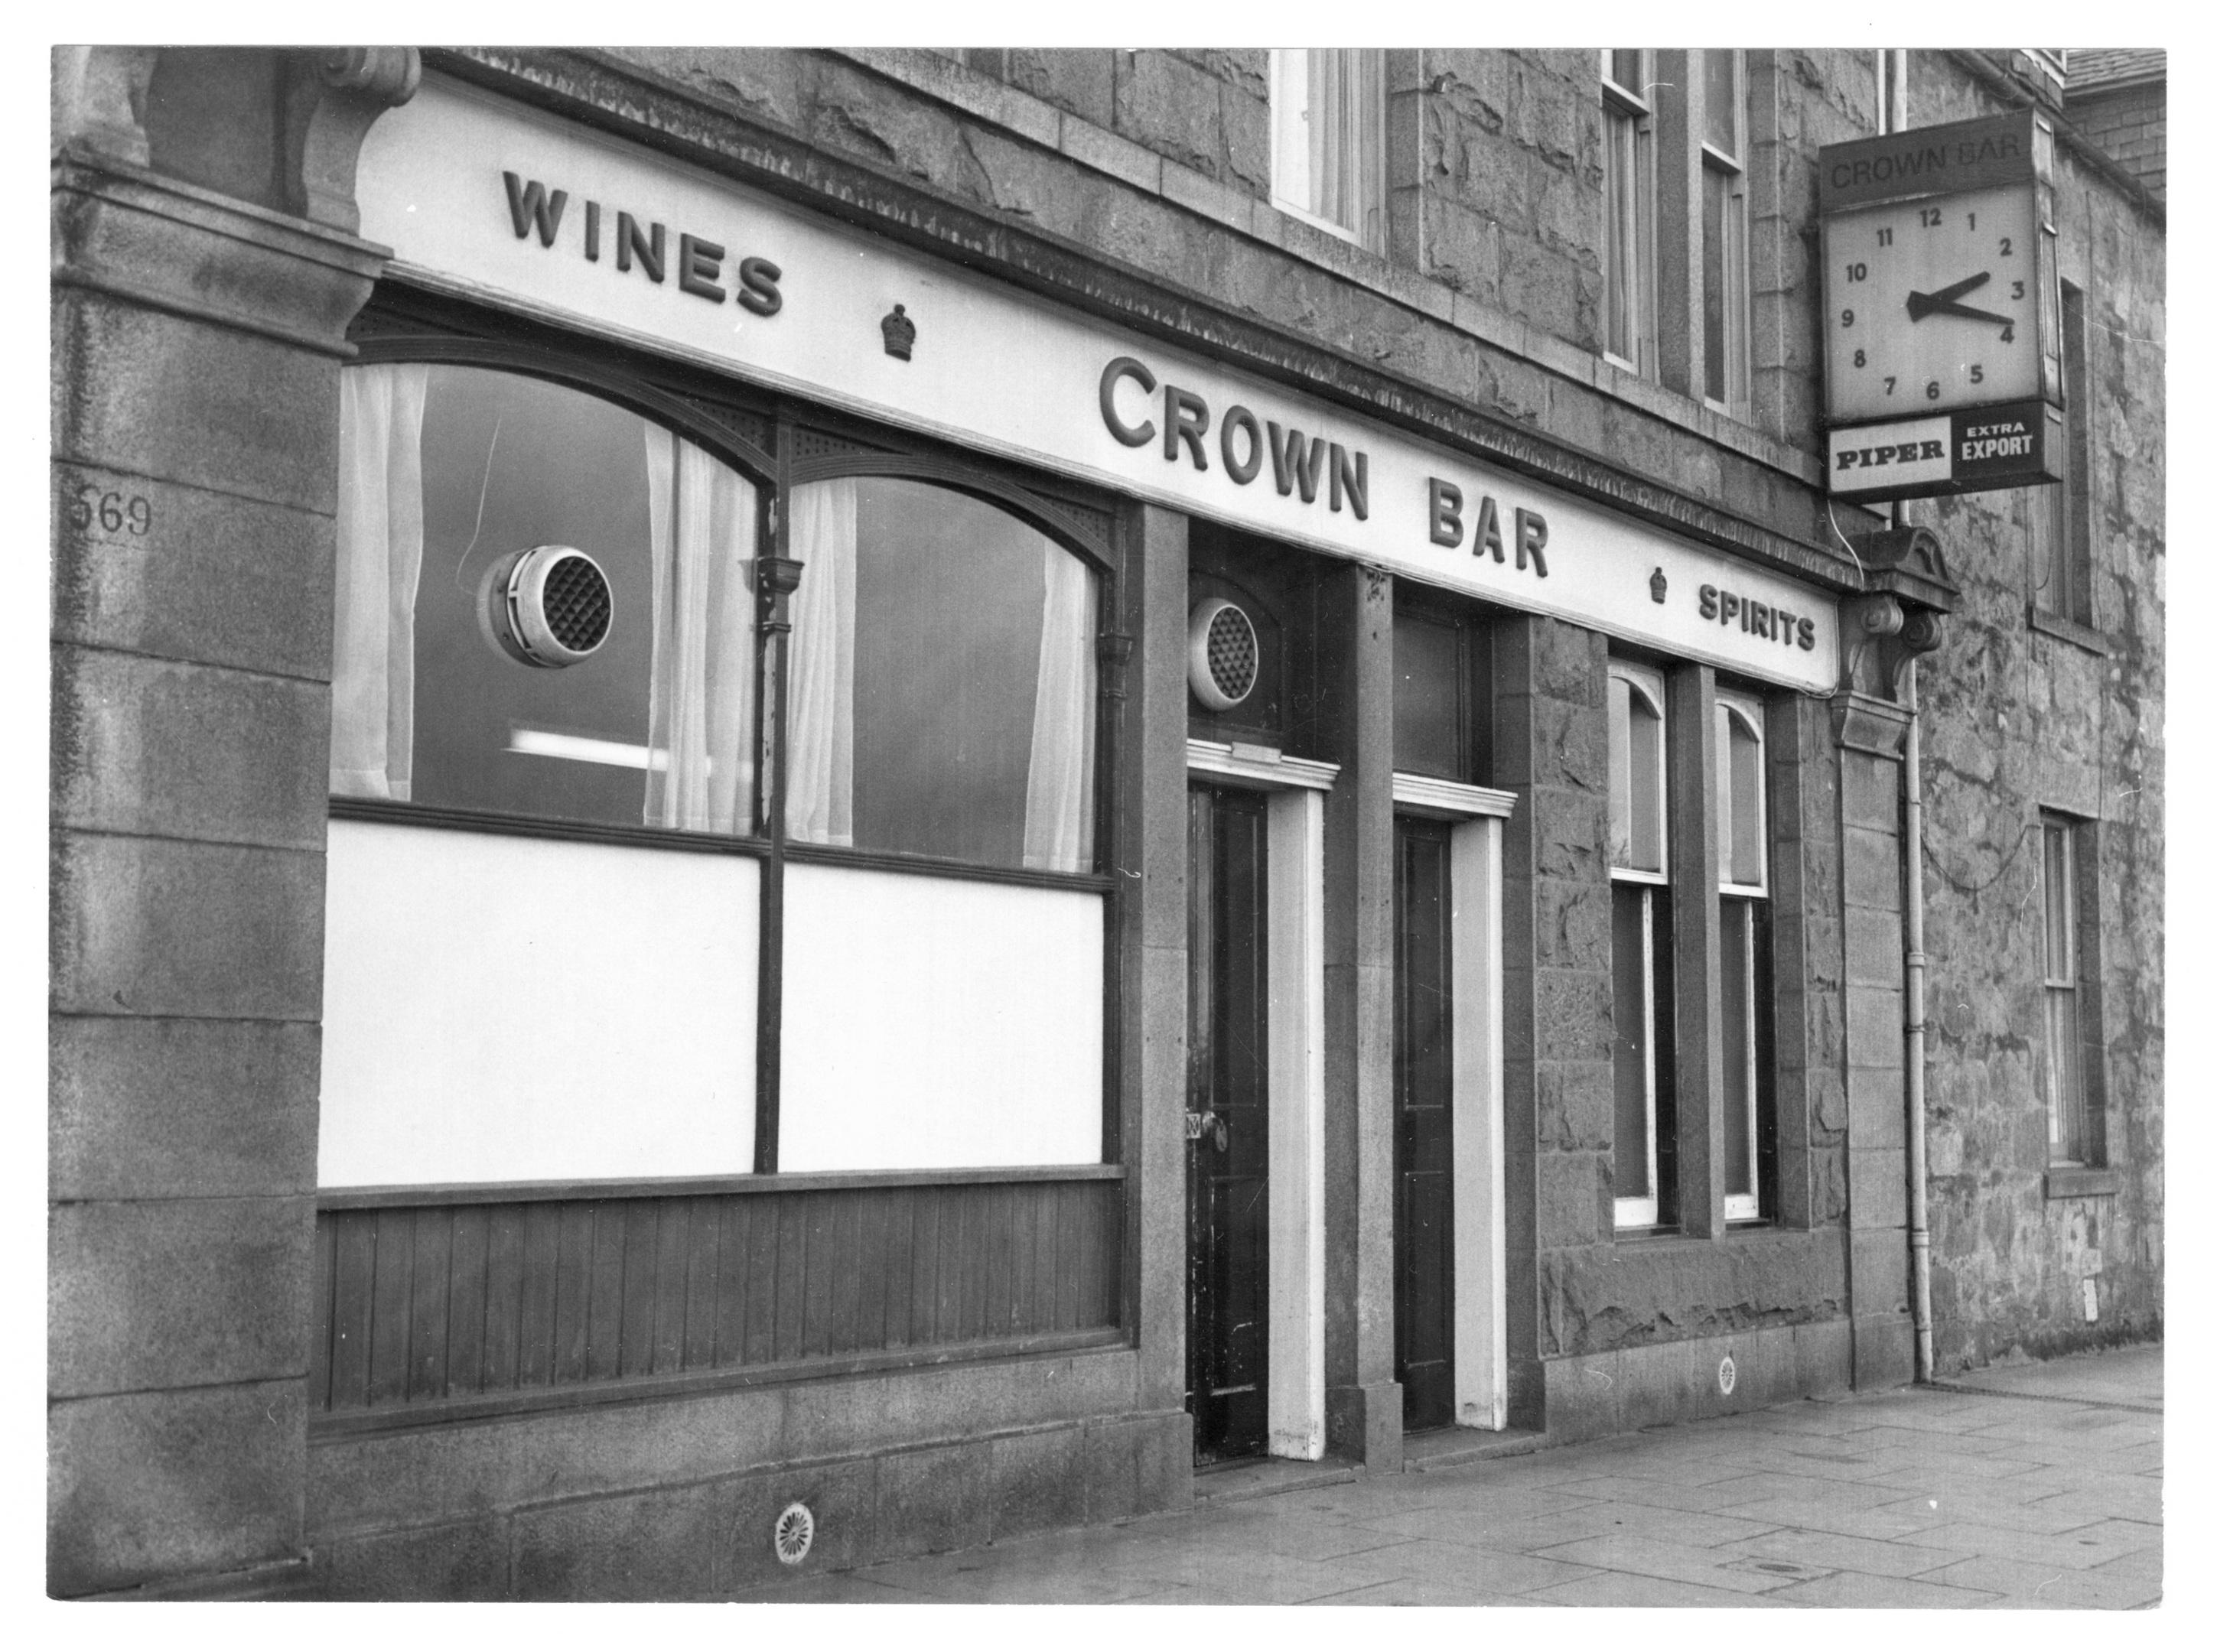 A view of the exterior of the Crown Bar in Woodside, Aberdeen, in 1979.